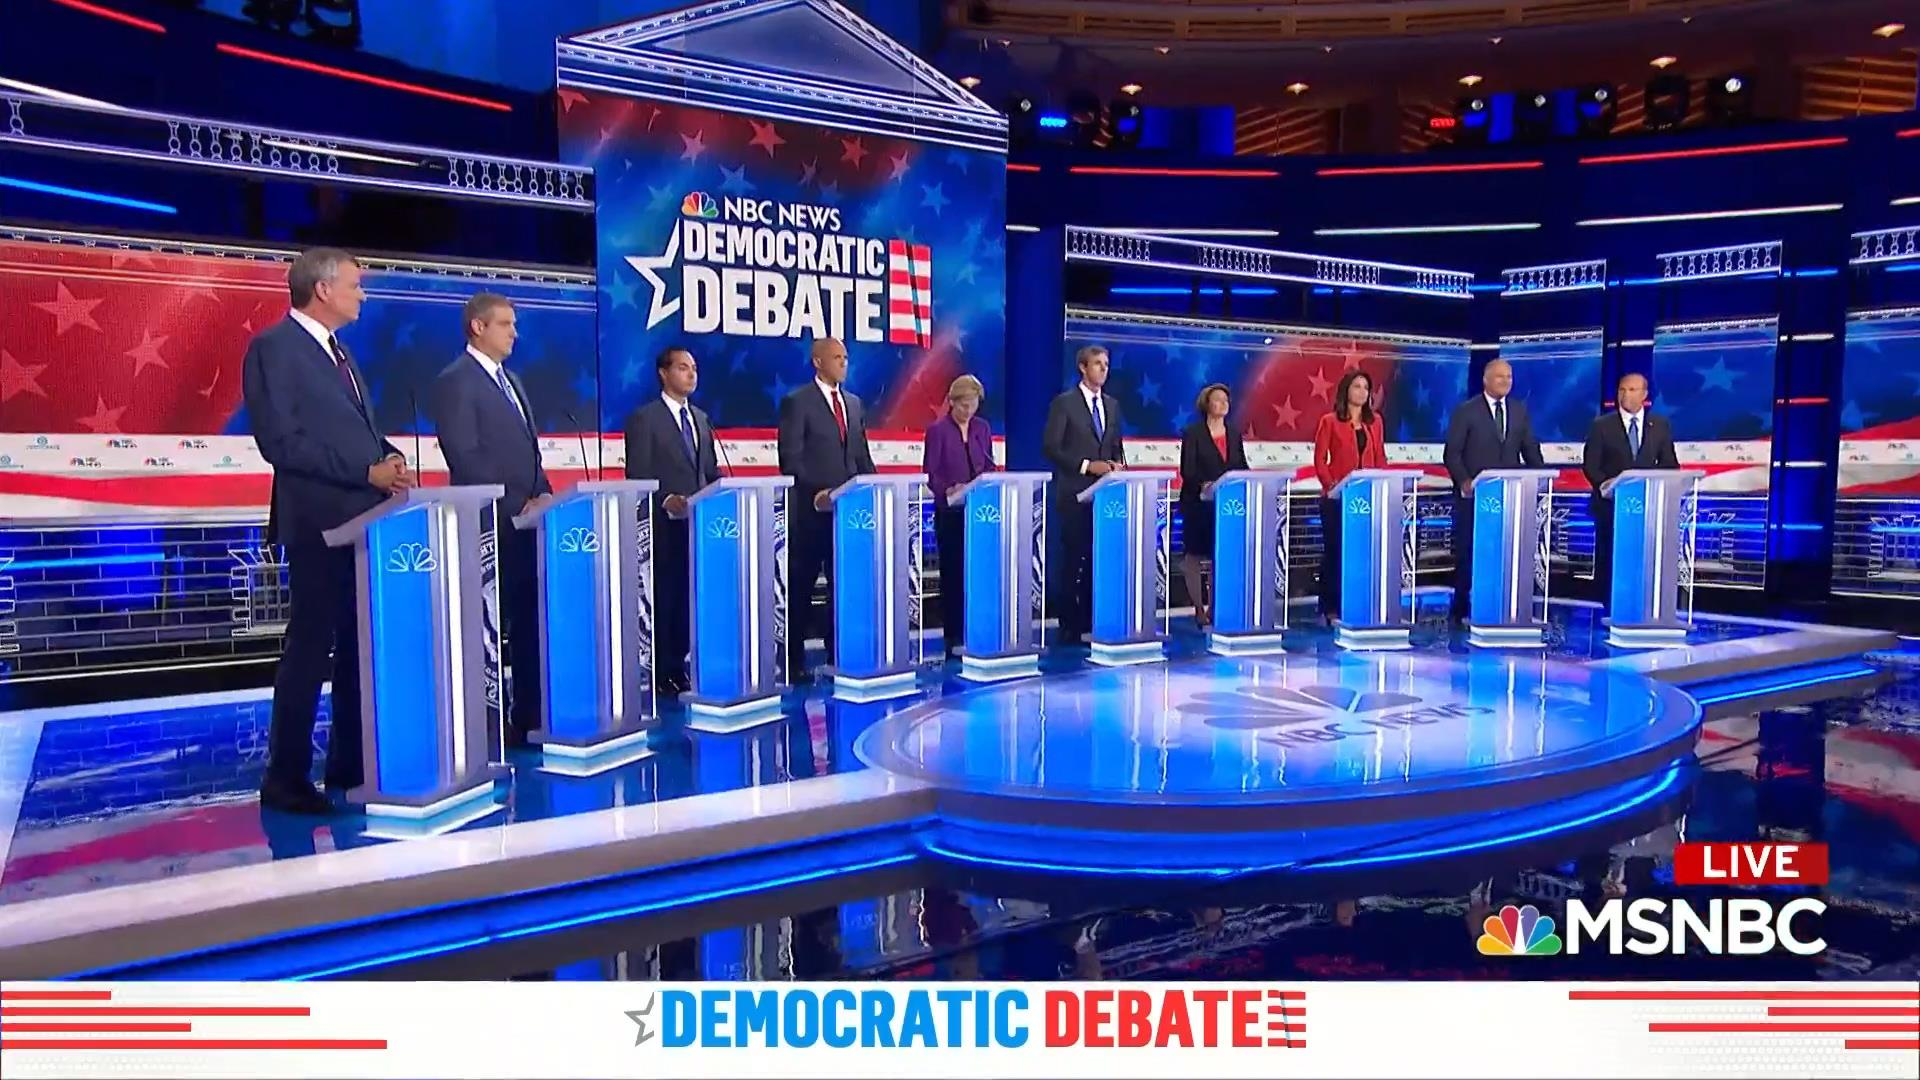 Democratic candidates called for unity in closing remarks